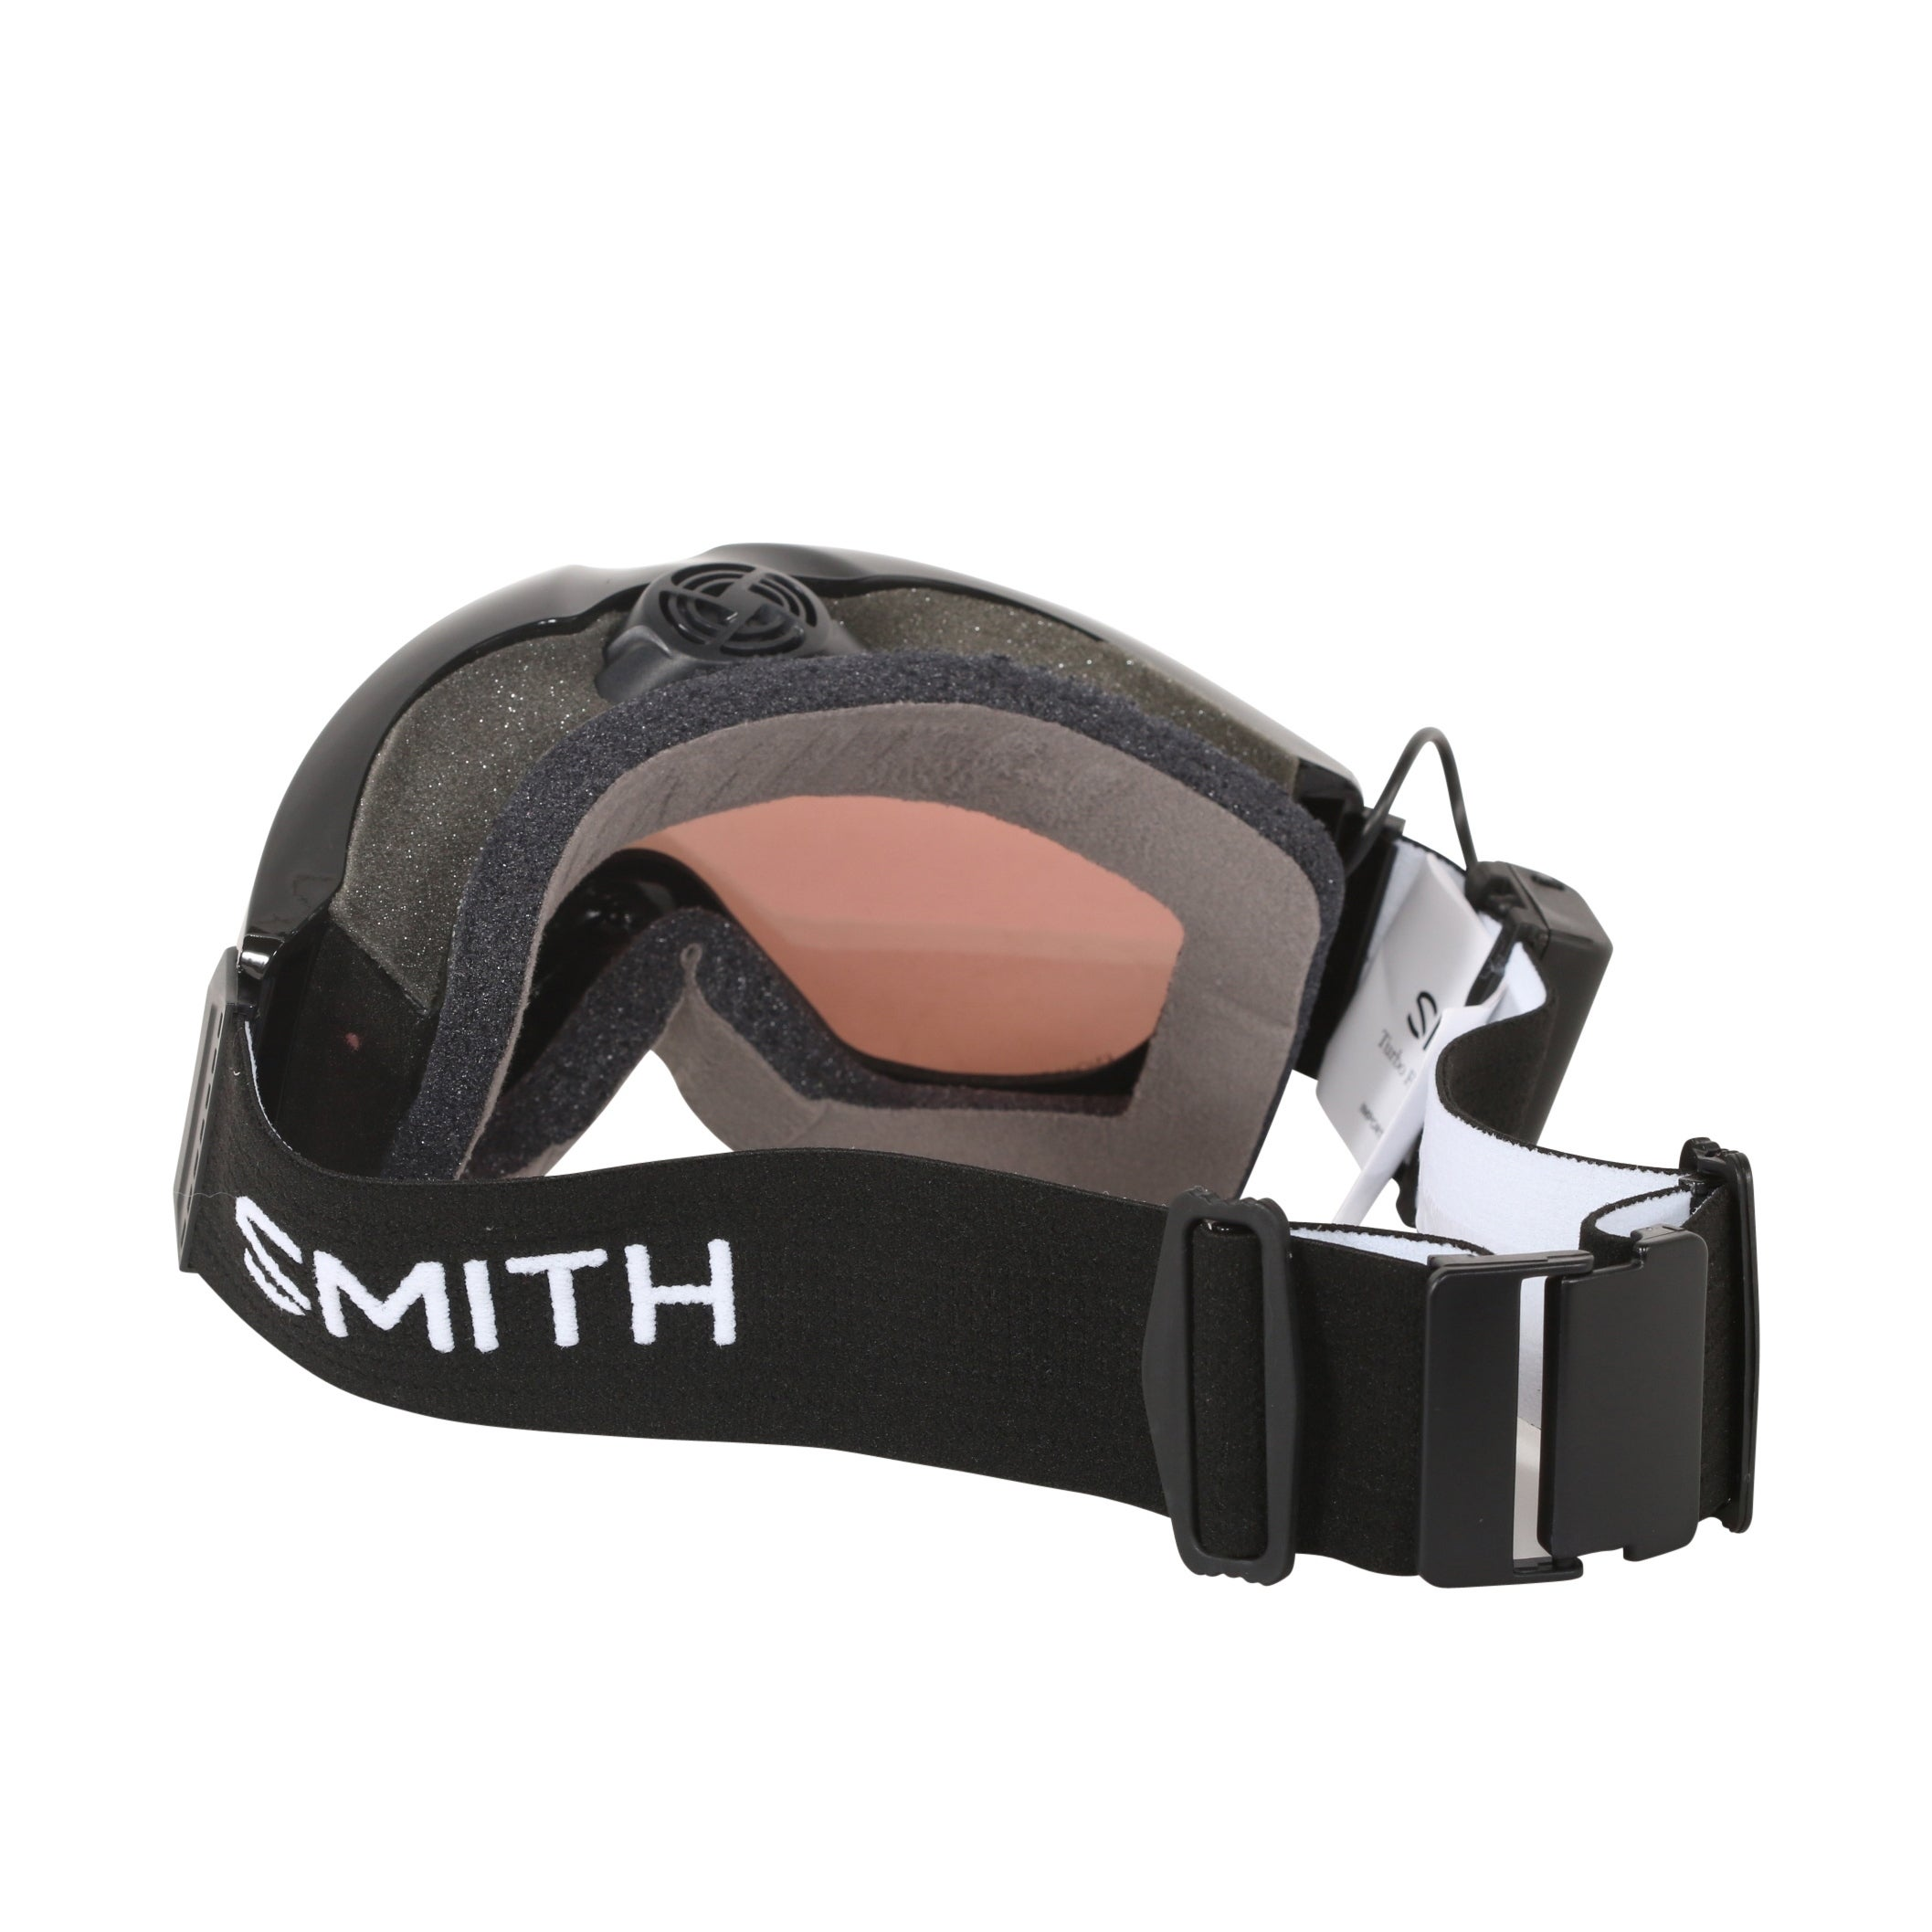 40d4d9e5f78 Shop Smith Optics Black ChromaPop Everyday Knowledge Turbo Fan Snow Goggles  - Free Shipping Today - Overstock - 18222429